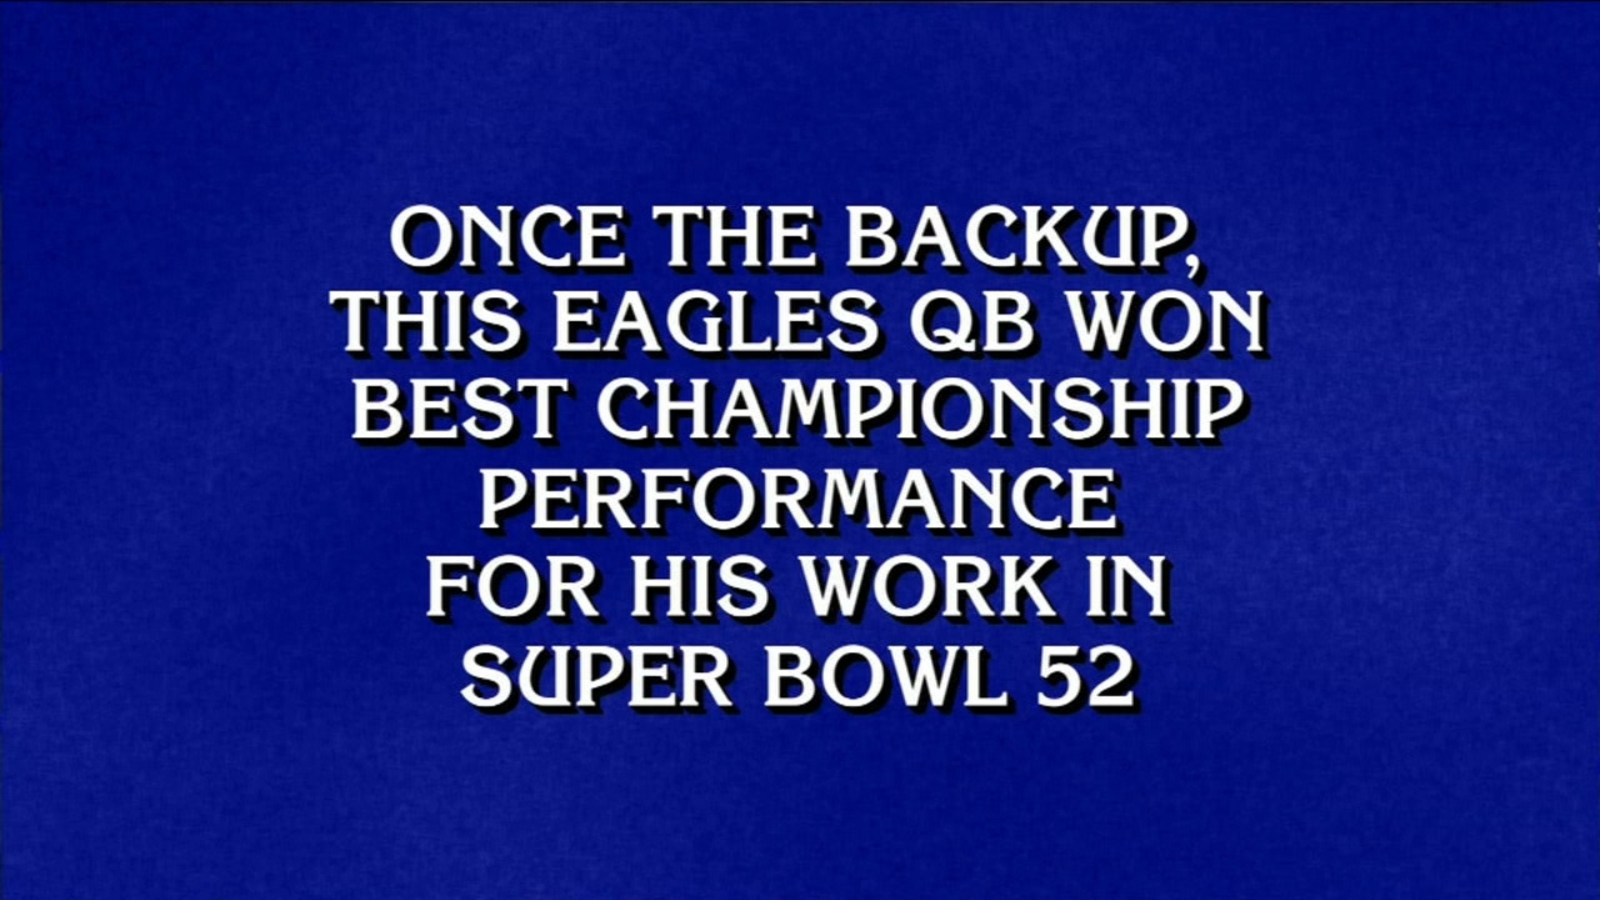 Jeopardy! clue lets us talk about Eagles Super Bowl win again